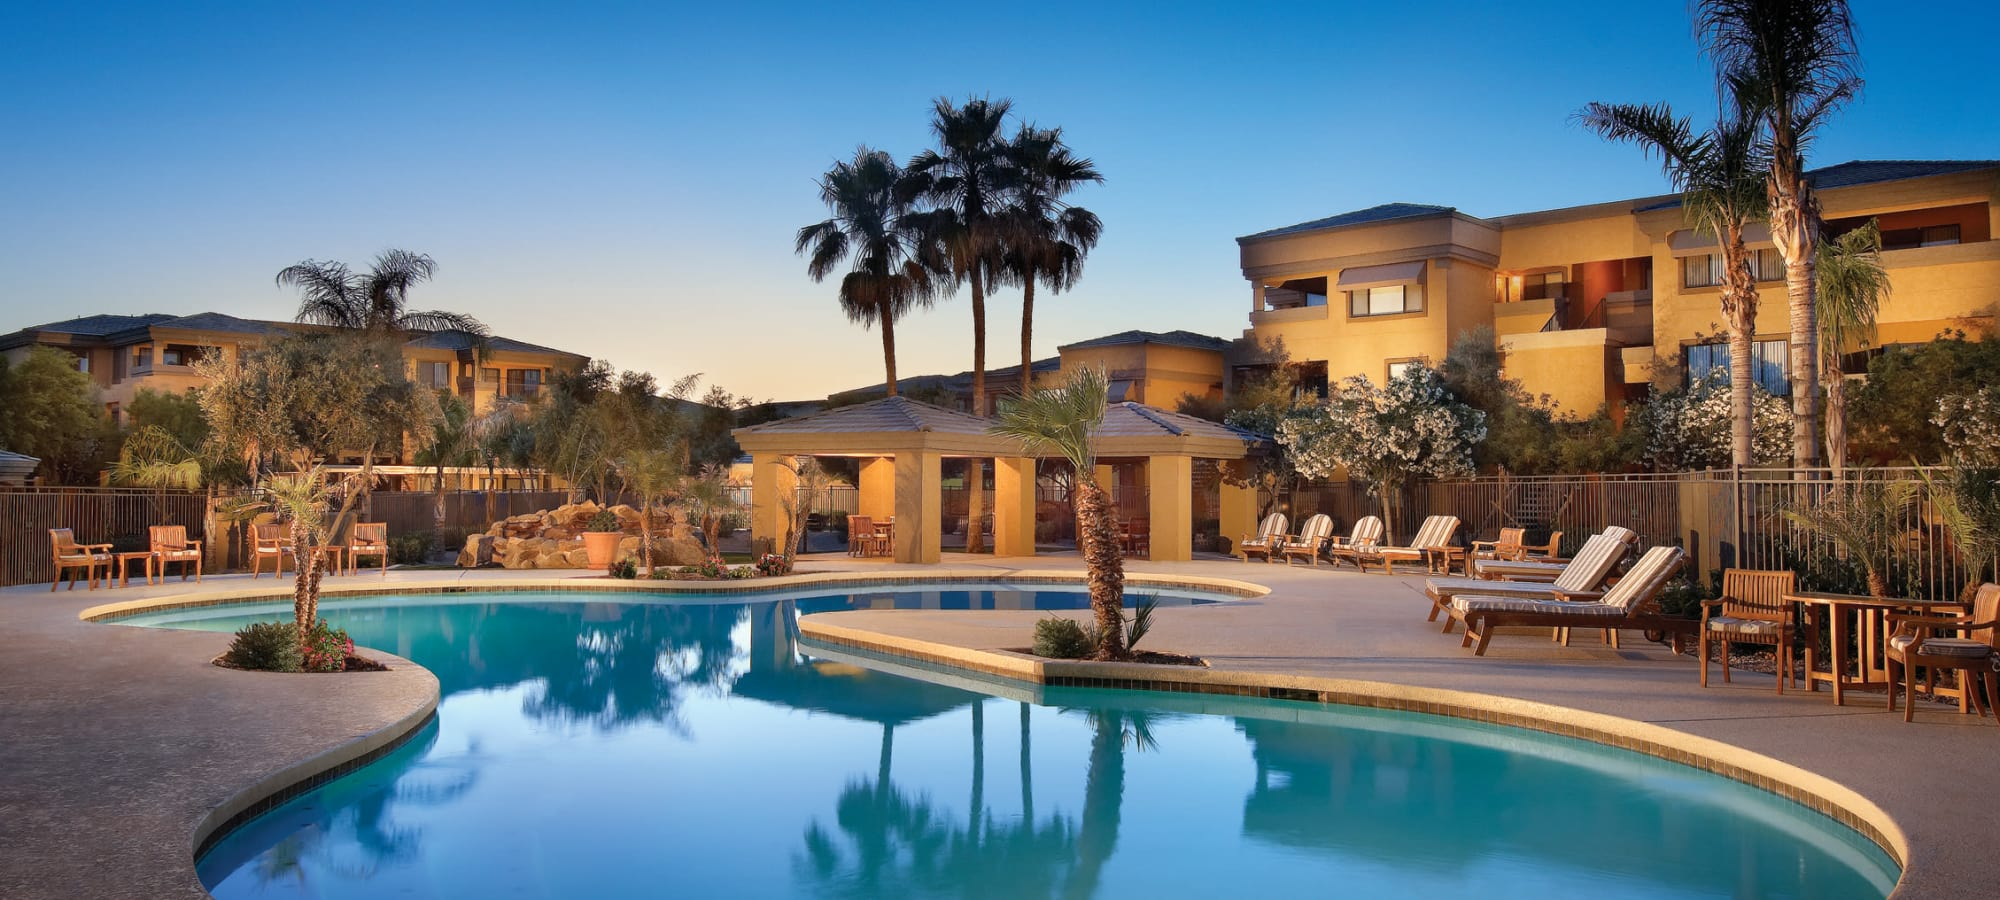 Swimming pool at Waterside at Ocotillo in Chandler, Arizona